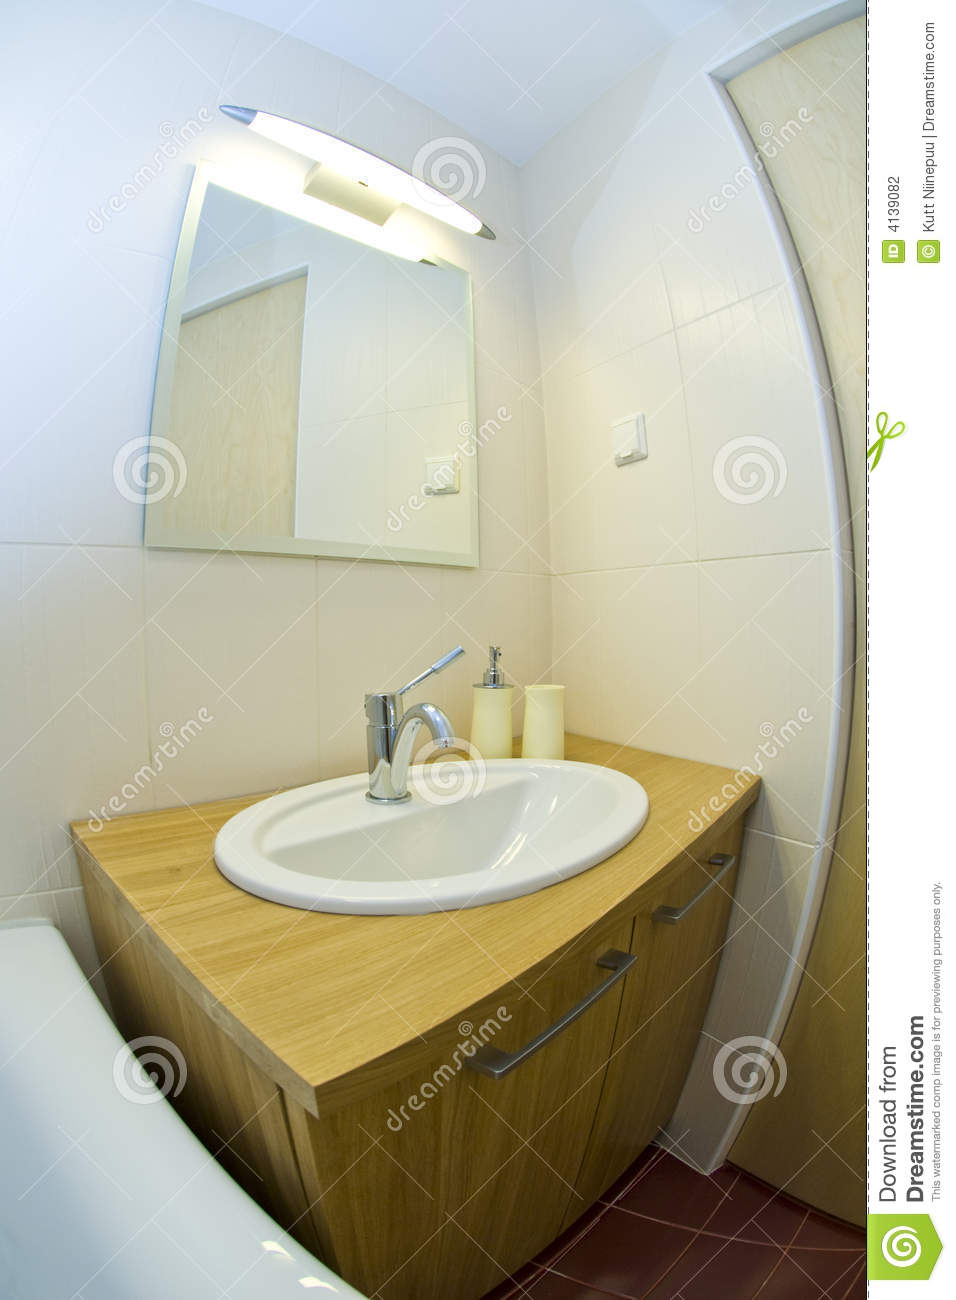 Petite salle de bains moderne photographie stock image 4139082 for Petite salle bain moderne